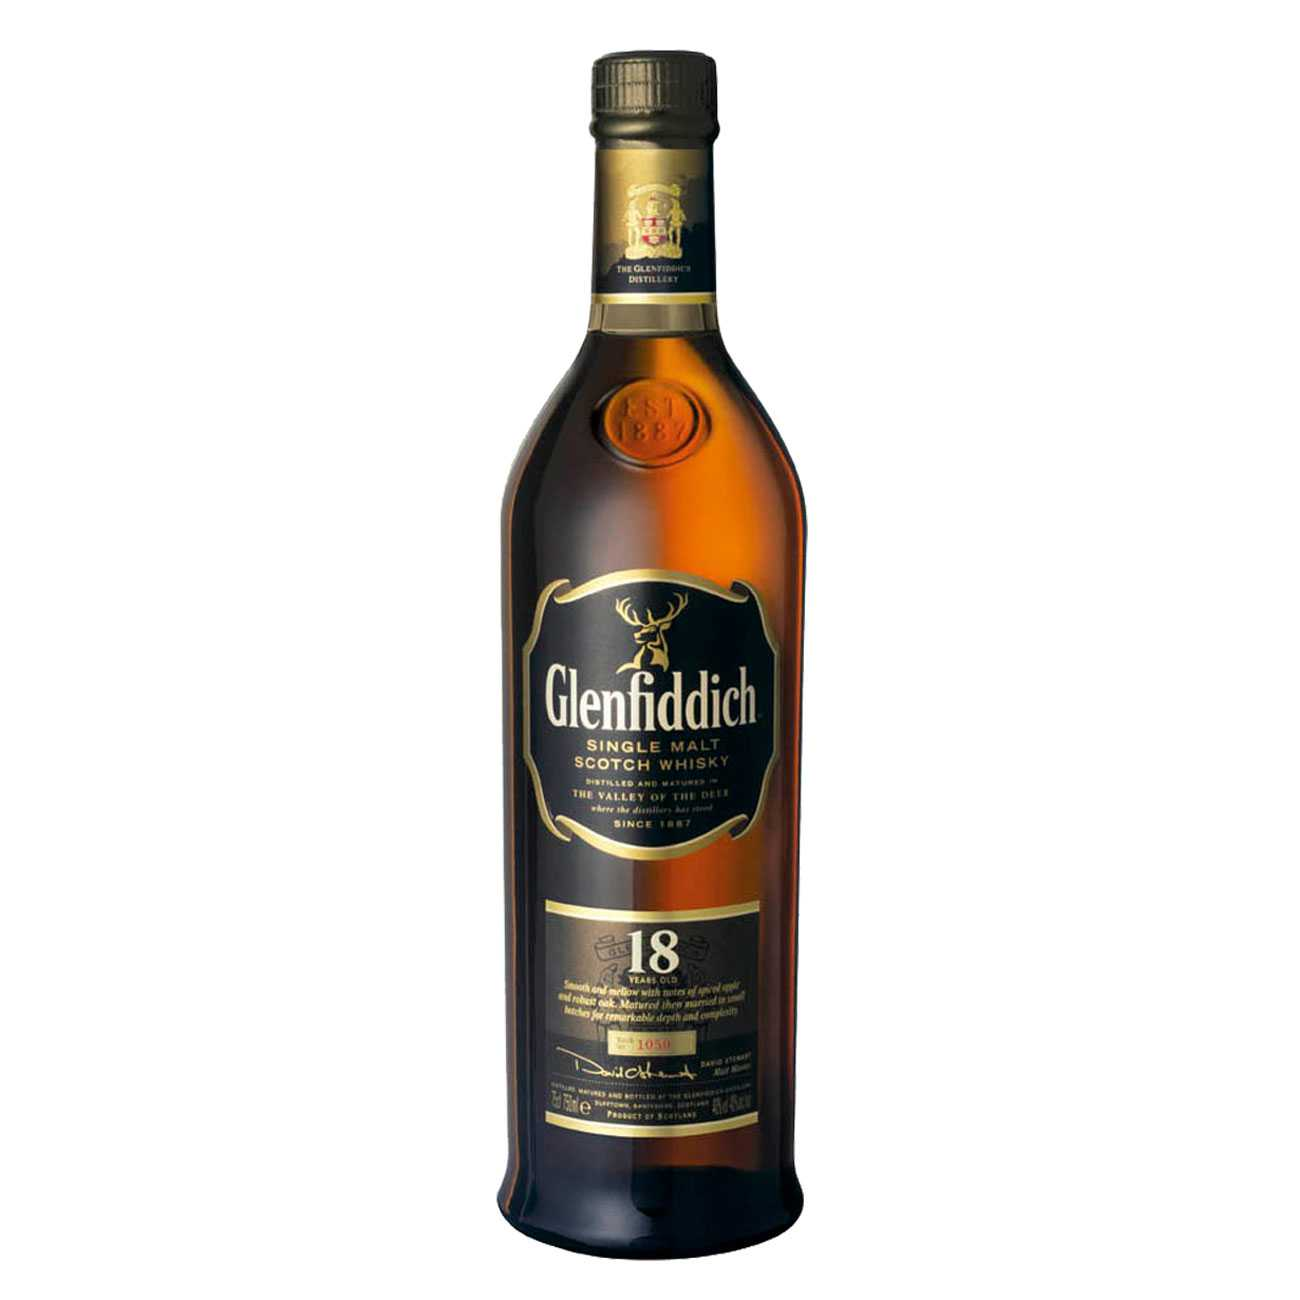 Whisky scotian, 18 YEAR OLD 1000 ML, Glenfiddich